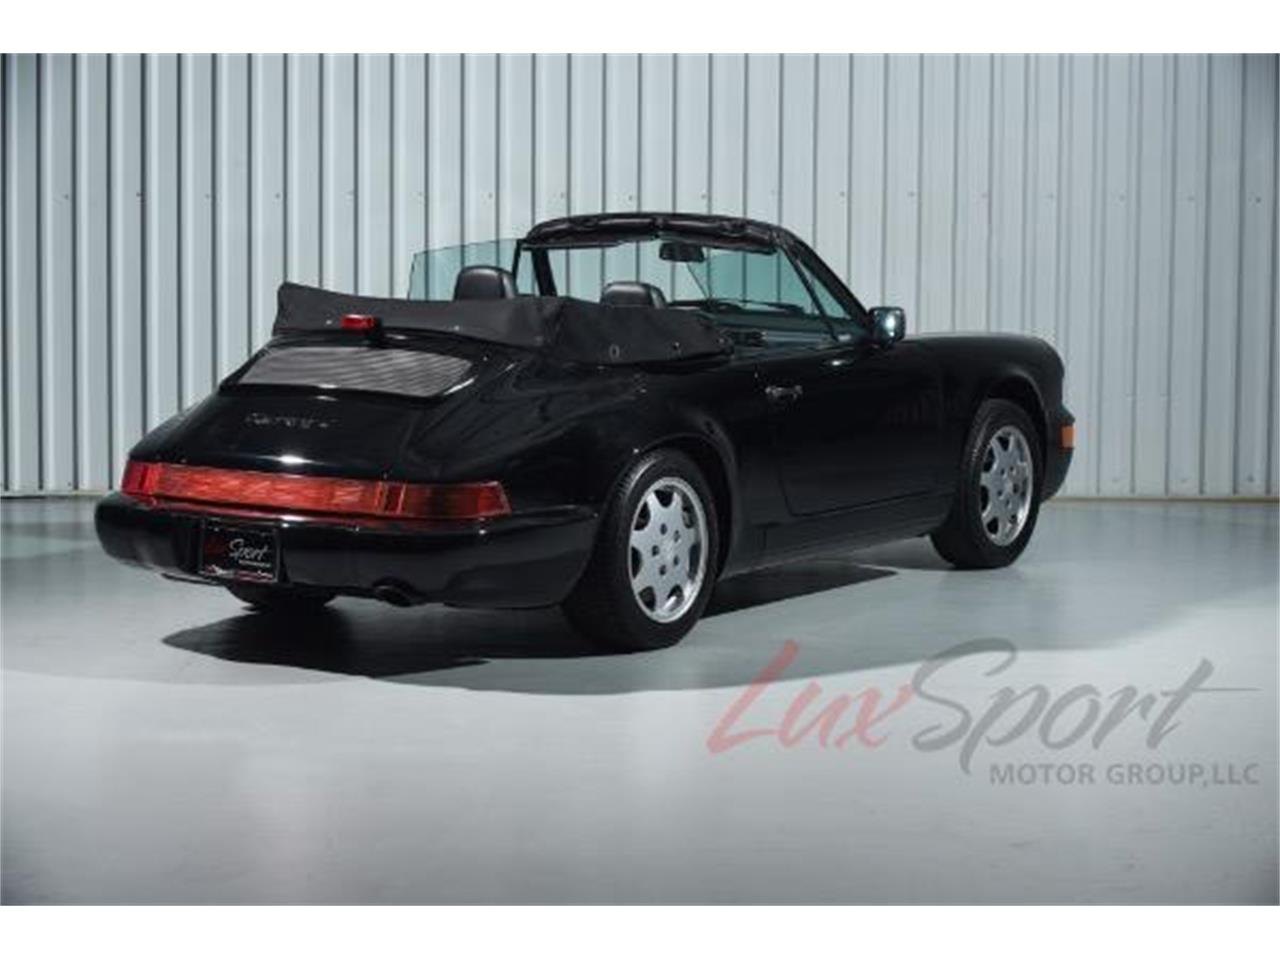 Large Picture of '90 Porsche 964 Carrera 4 Cabriolet located in New York - MGT0